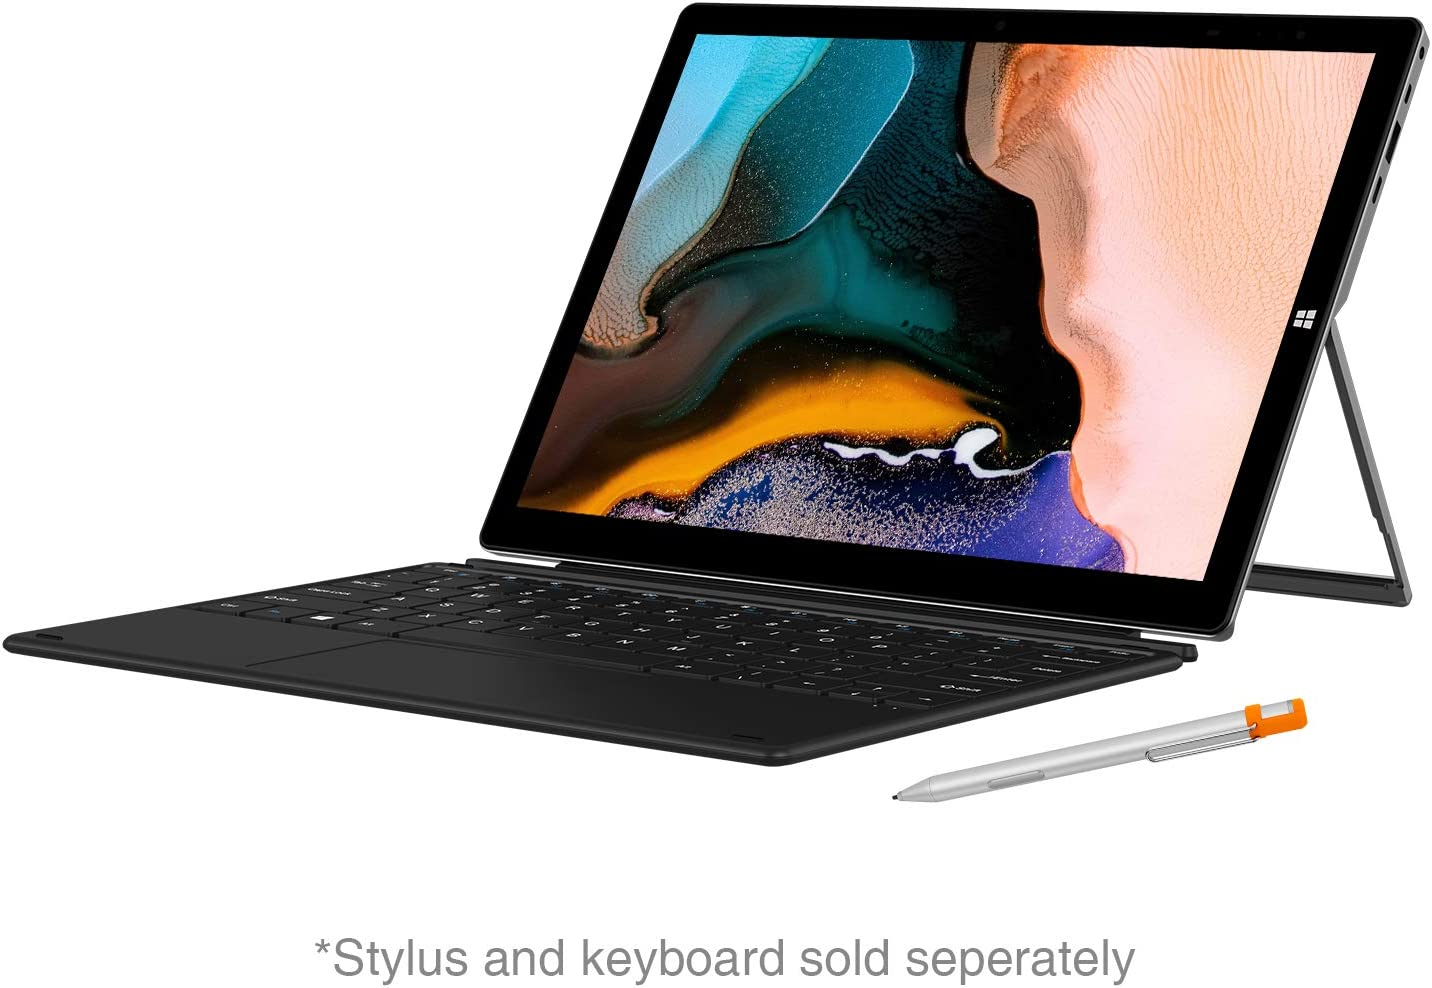 CHUWI UBook X 12'' Touchscreen 2-in-1 Windows 10 Tablet PC, Intel N4100 Quad Core Processor, 2K Display, 8GB RAM/256GB SSD with Type-c, USB 3.0 (Keyboard and Pen not Included)